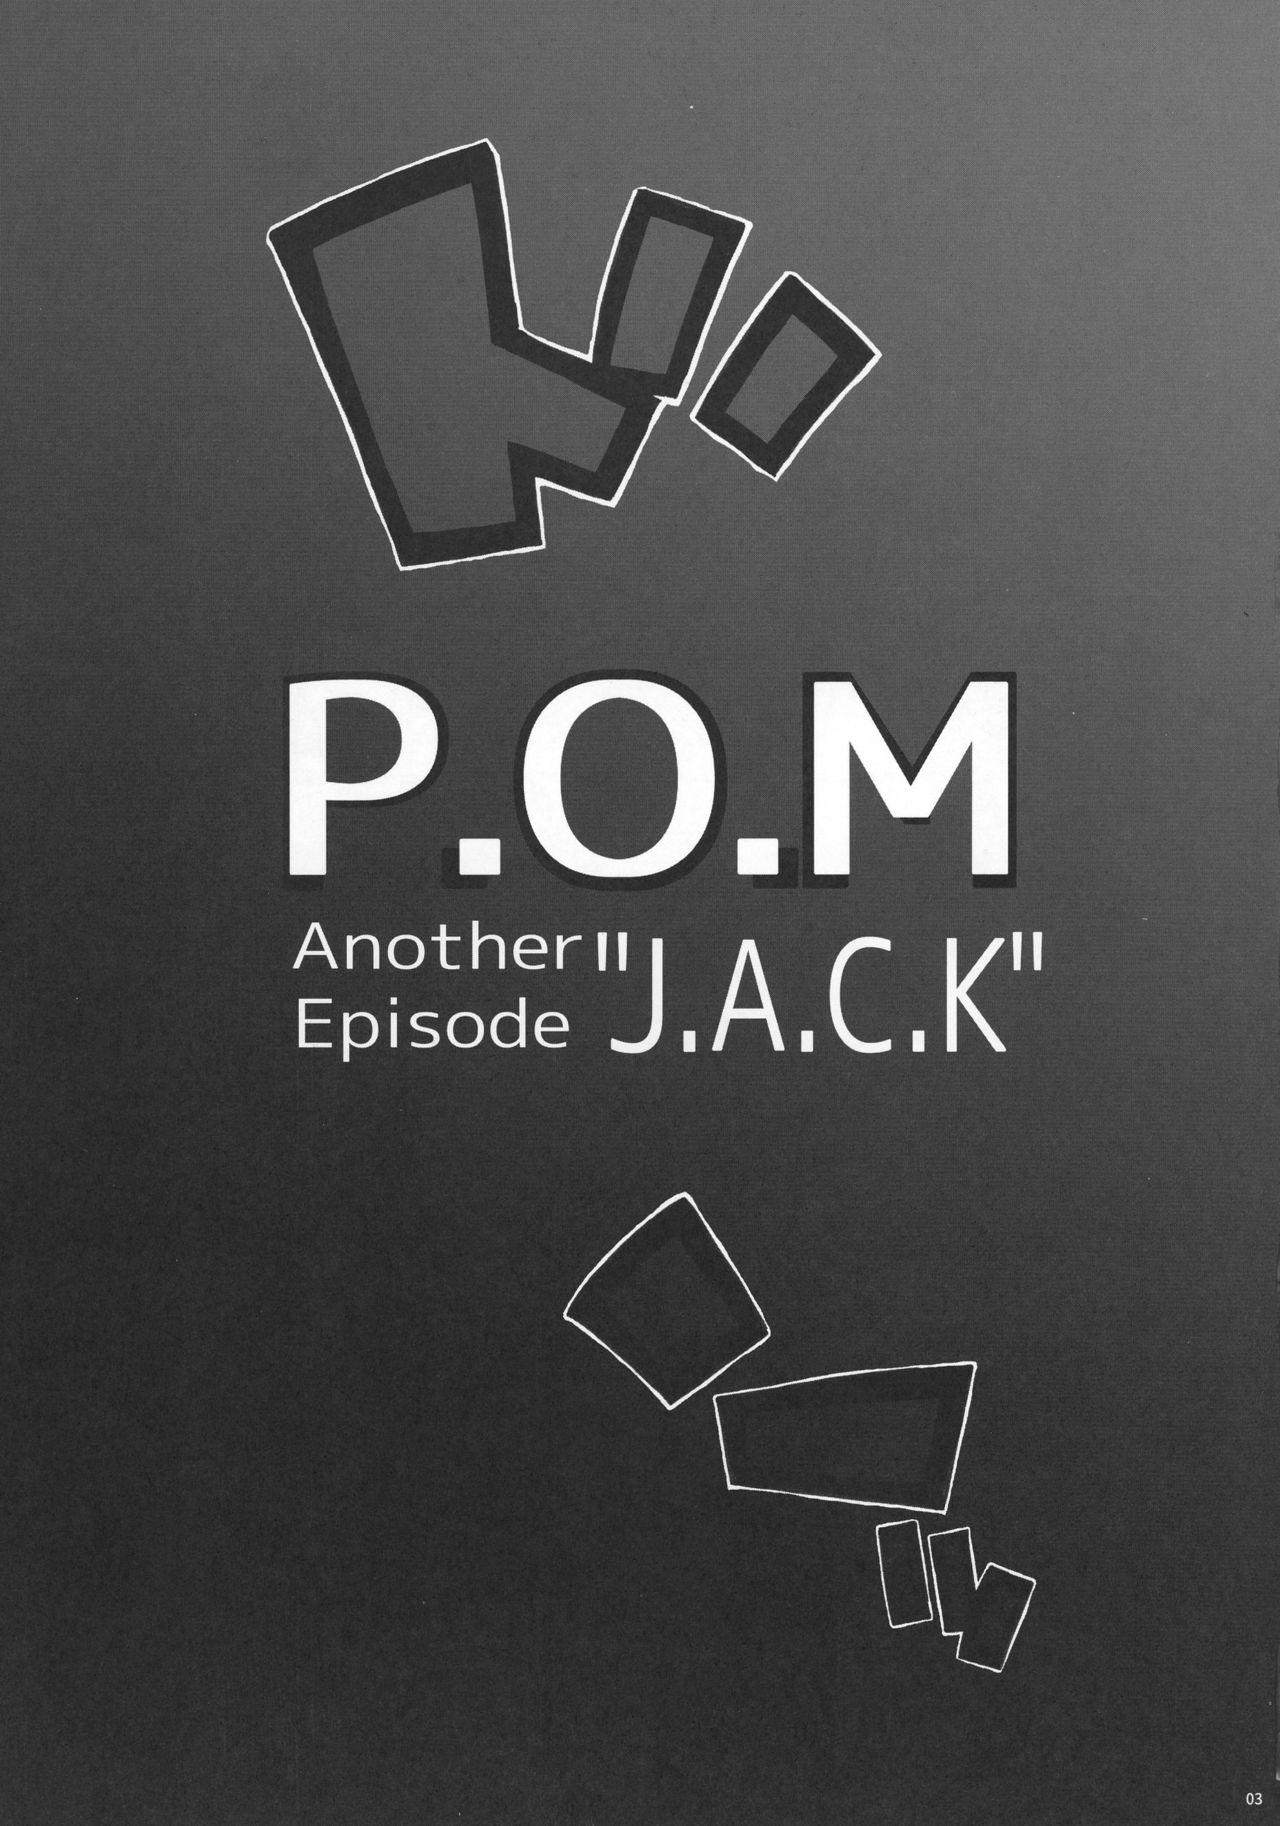 """P.O.M Another Episode """"J.A.C.K"""" 4"""